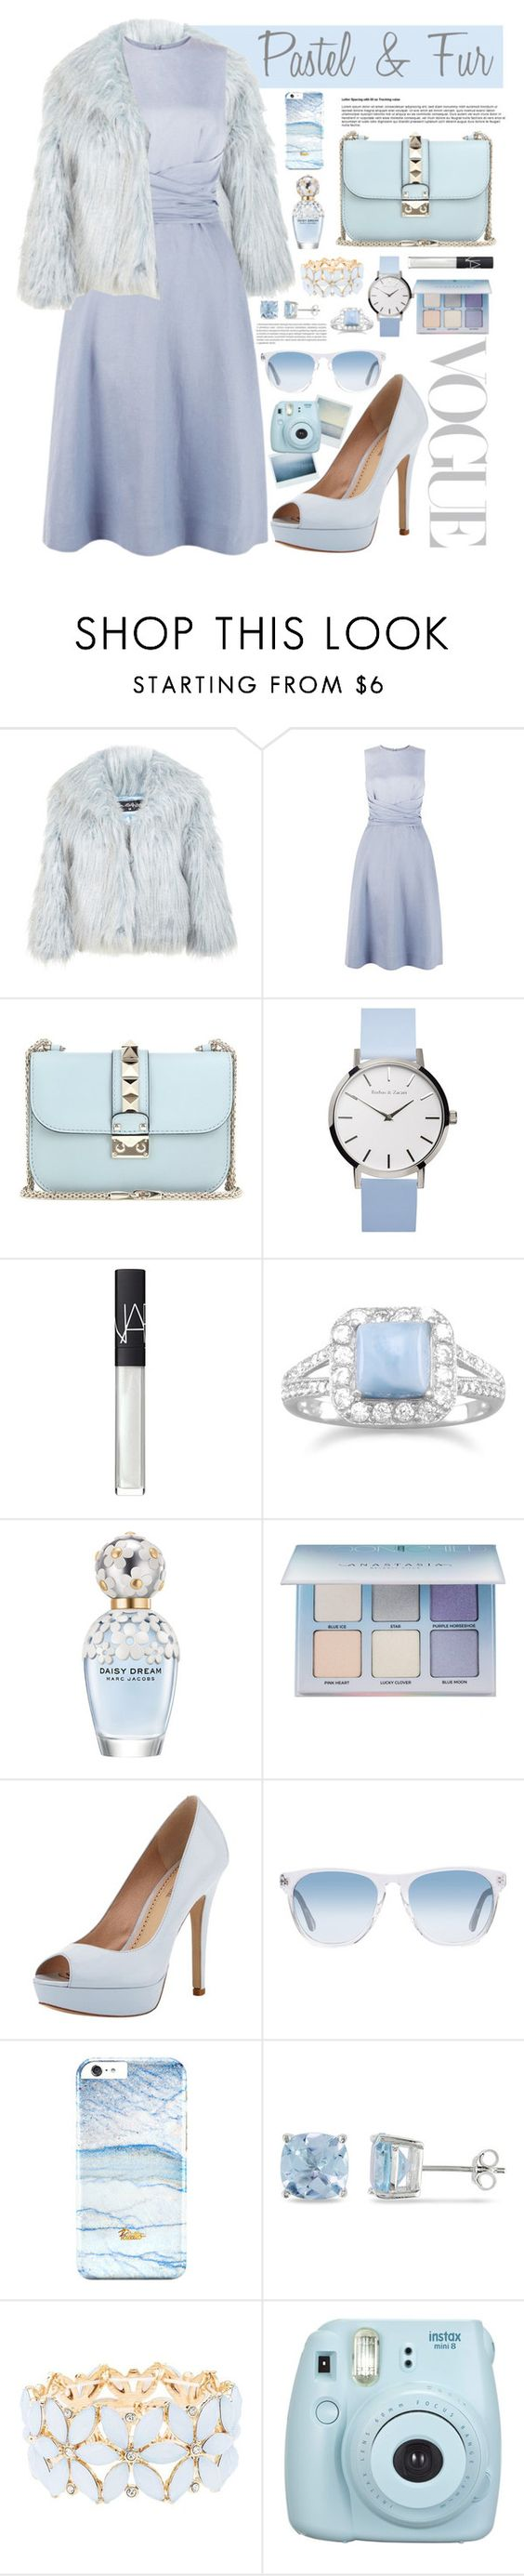 """""""Untitled #89"""" by alltimegabi ❤ liked on Polyvore featuring Miss Selfridge, Hobbs, Valentino, NARS Cosmetics, BillyTheTree, Marc Jacobs, Anastasia Beverly Hills, Pour La Victoire, Oliver Peoples and Oris"""